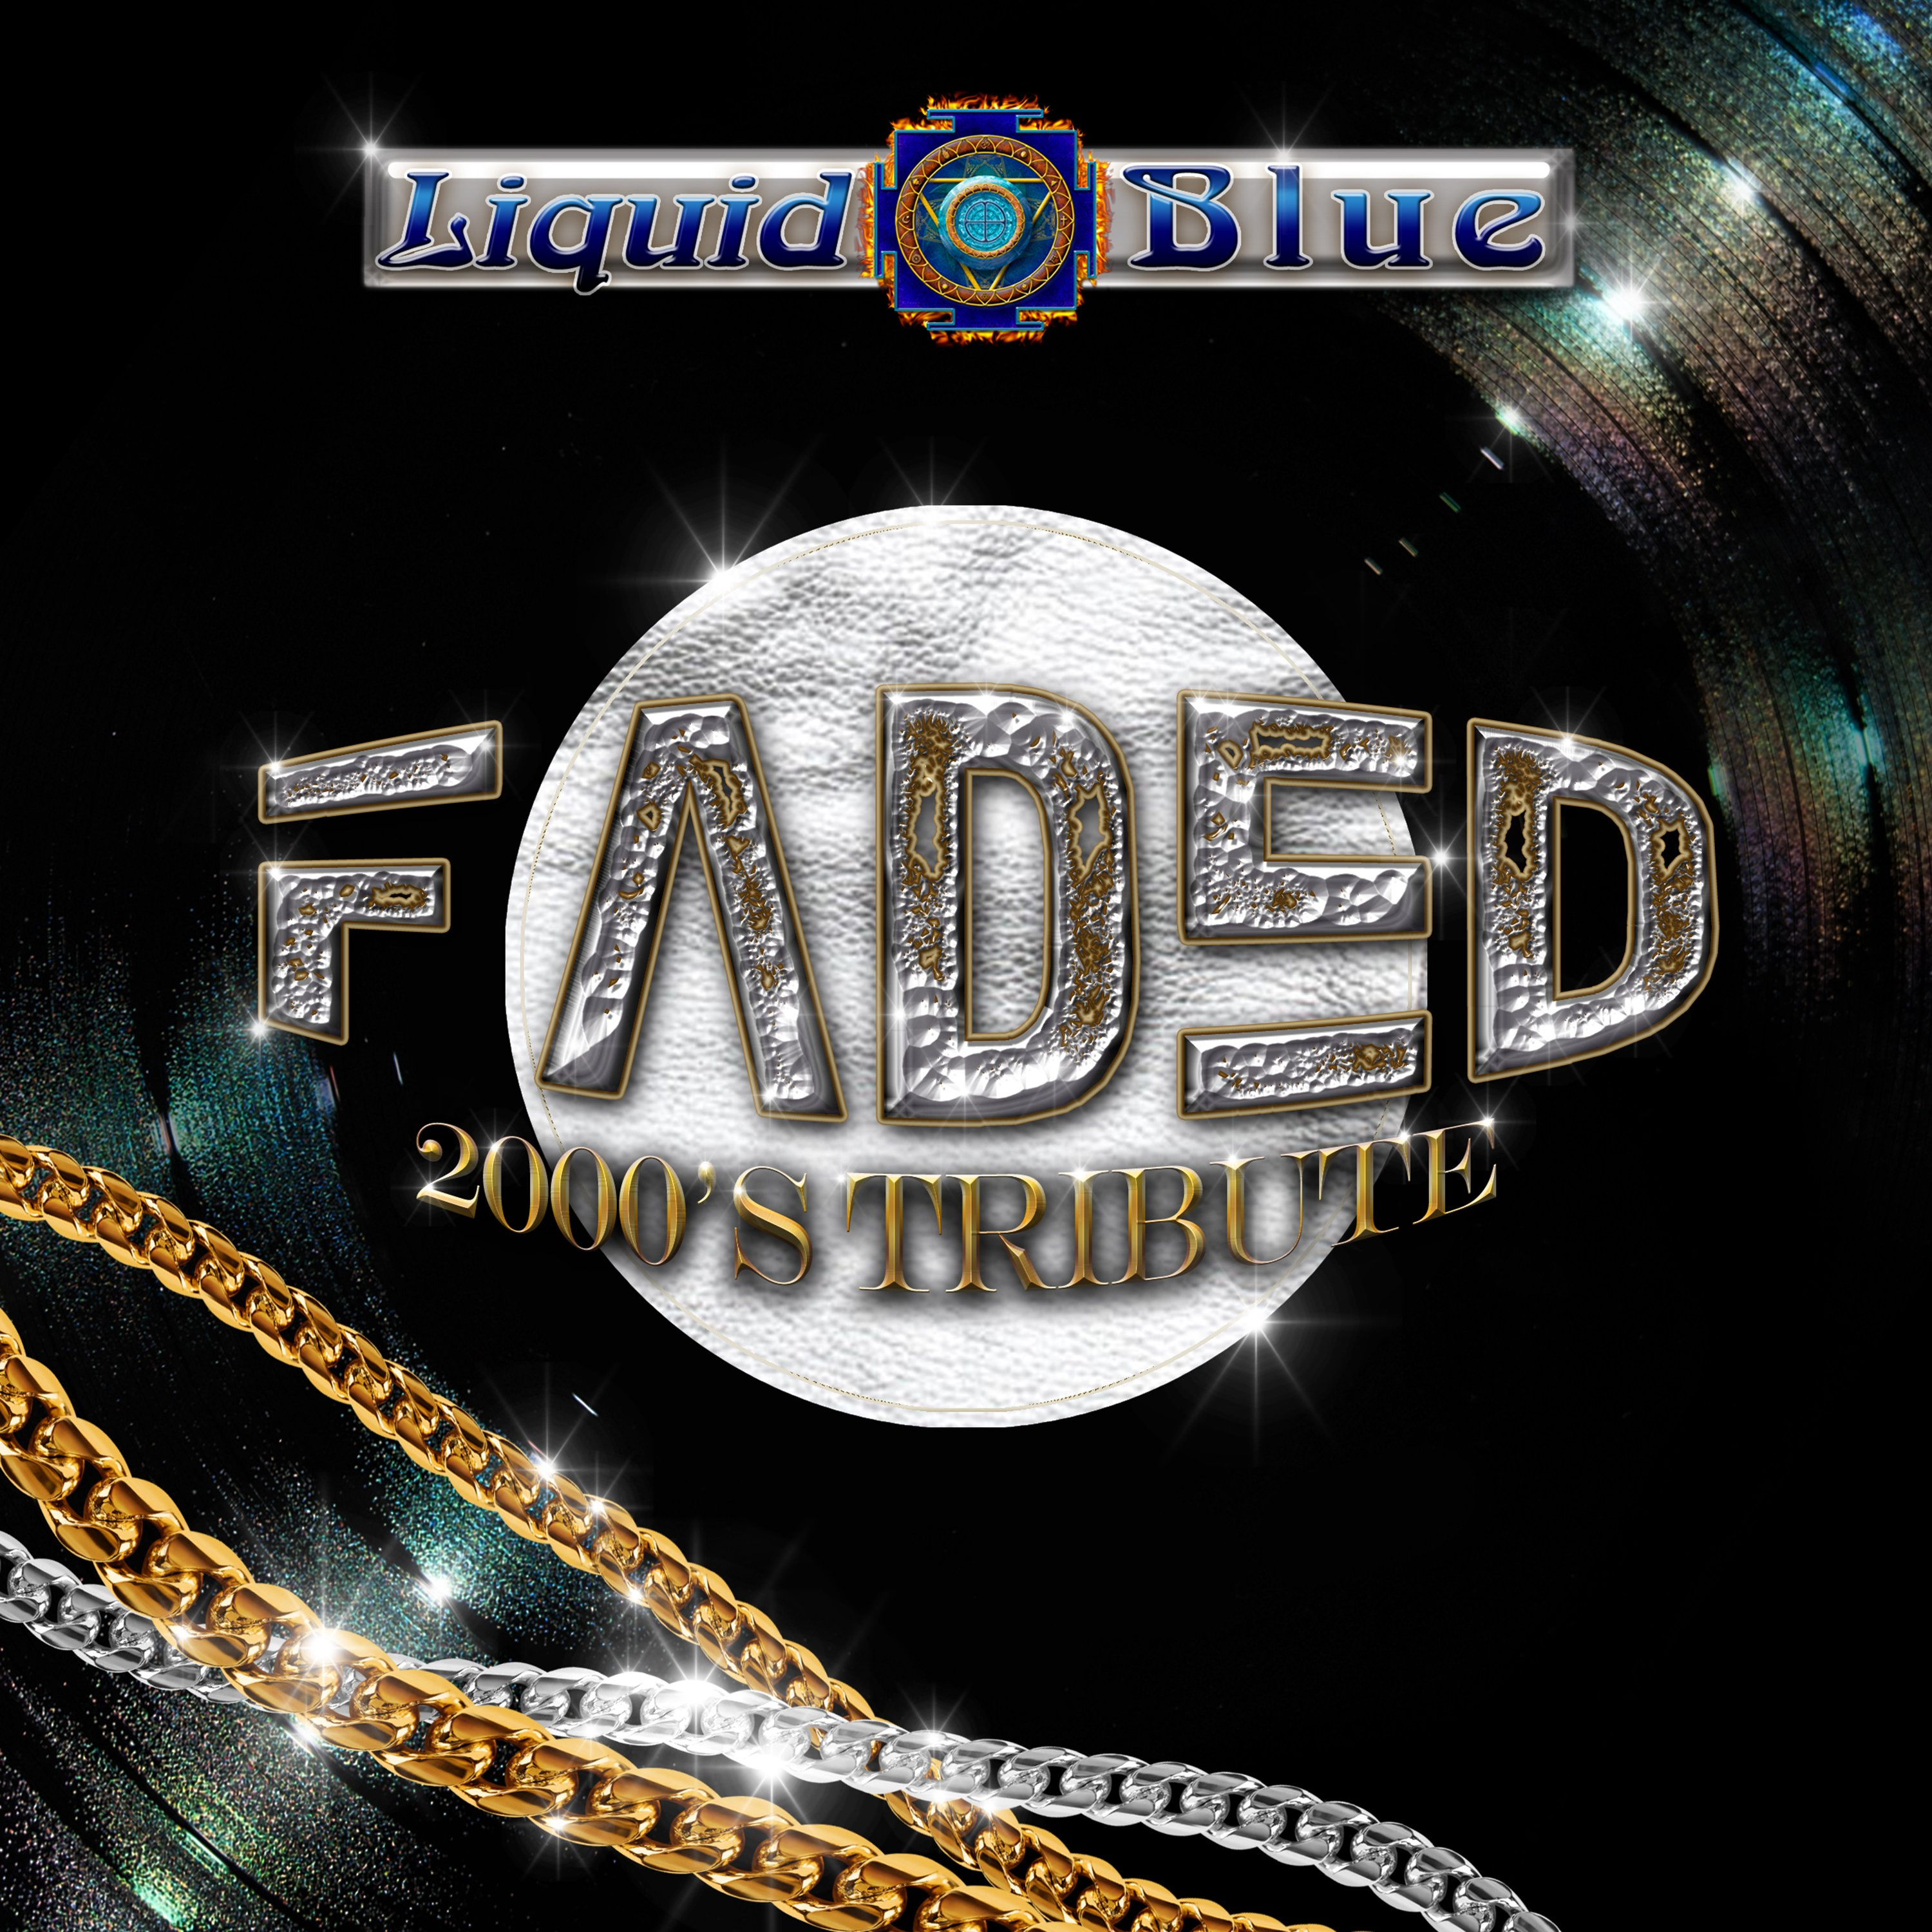 Faded 2000's Tribute - Liquid Blue